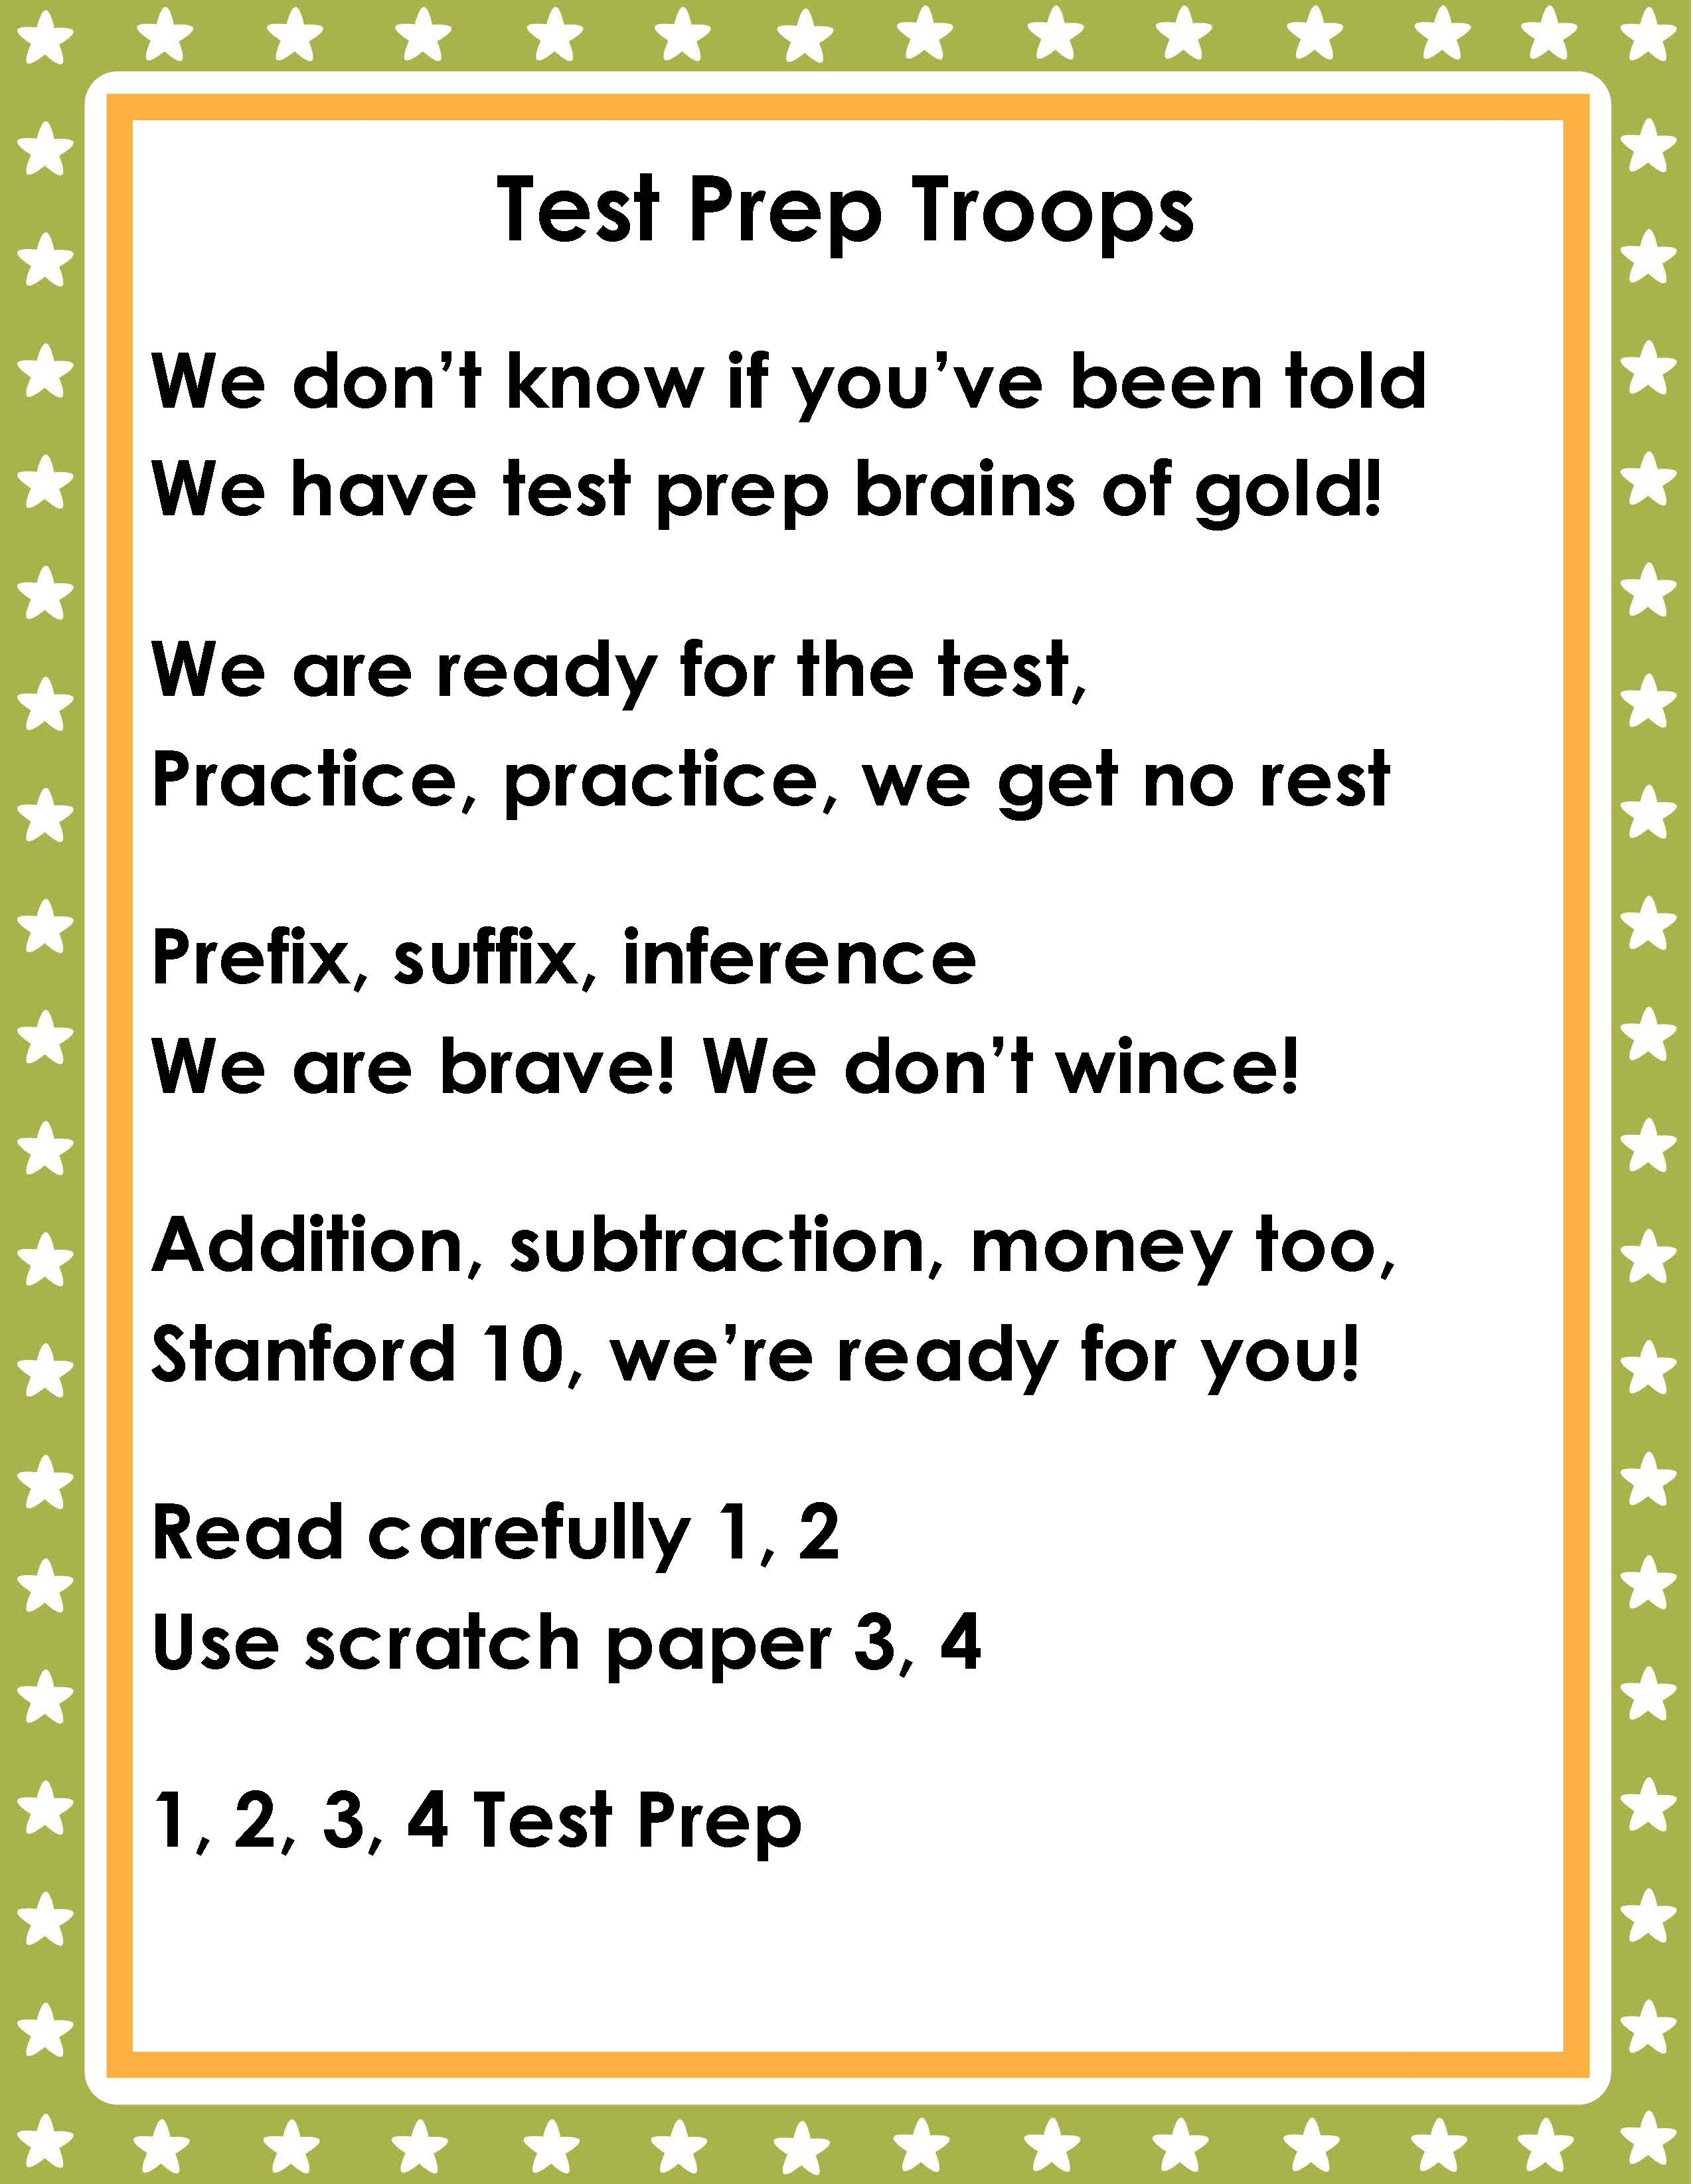 Test Prep Troops (2)